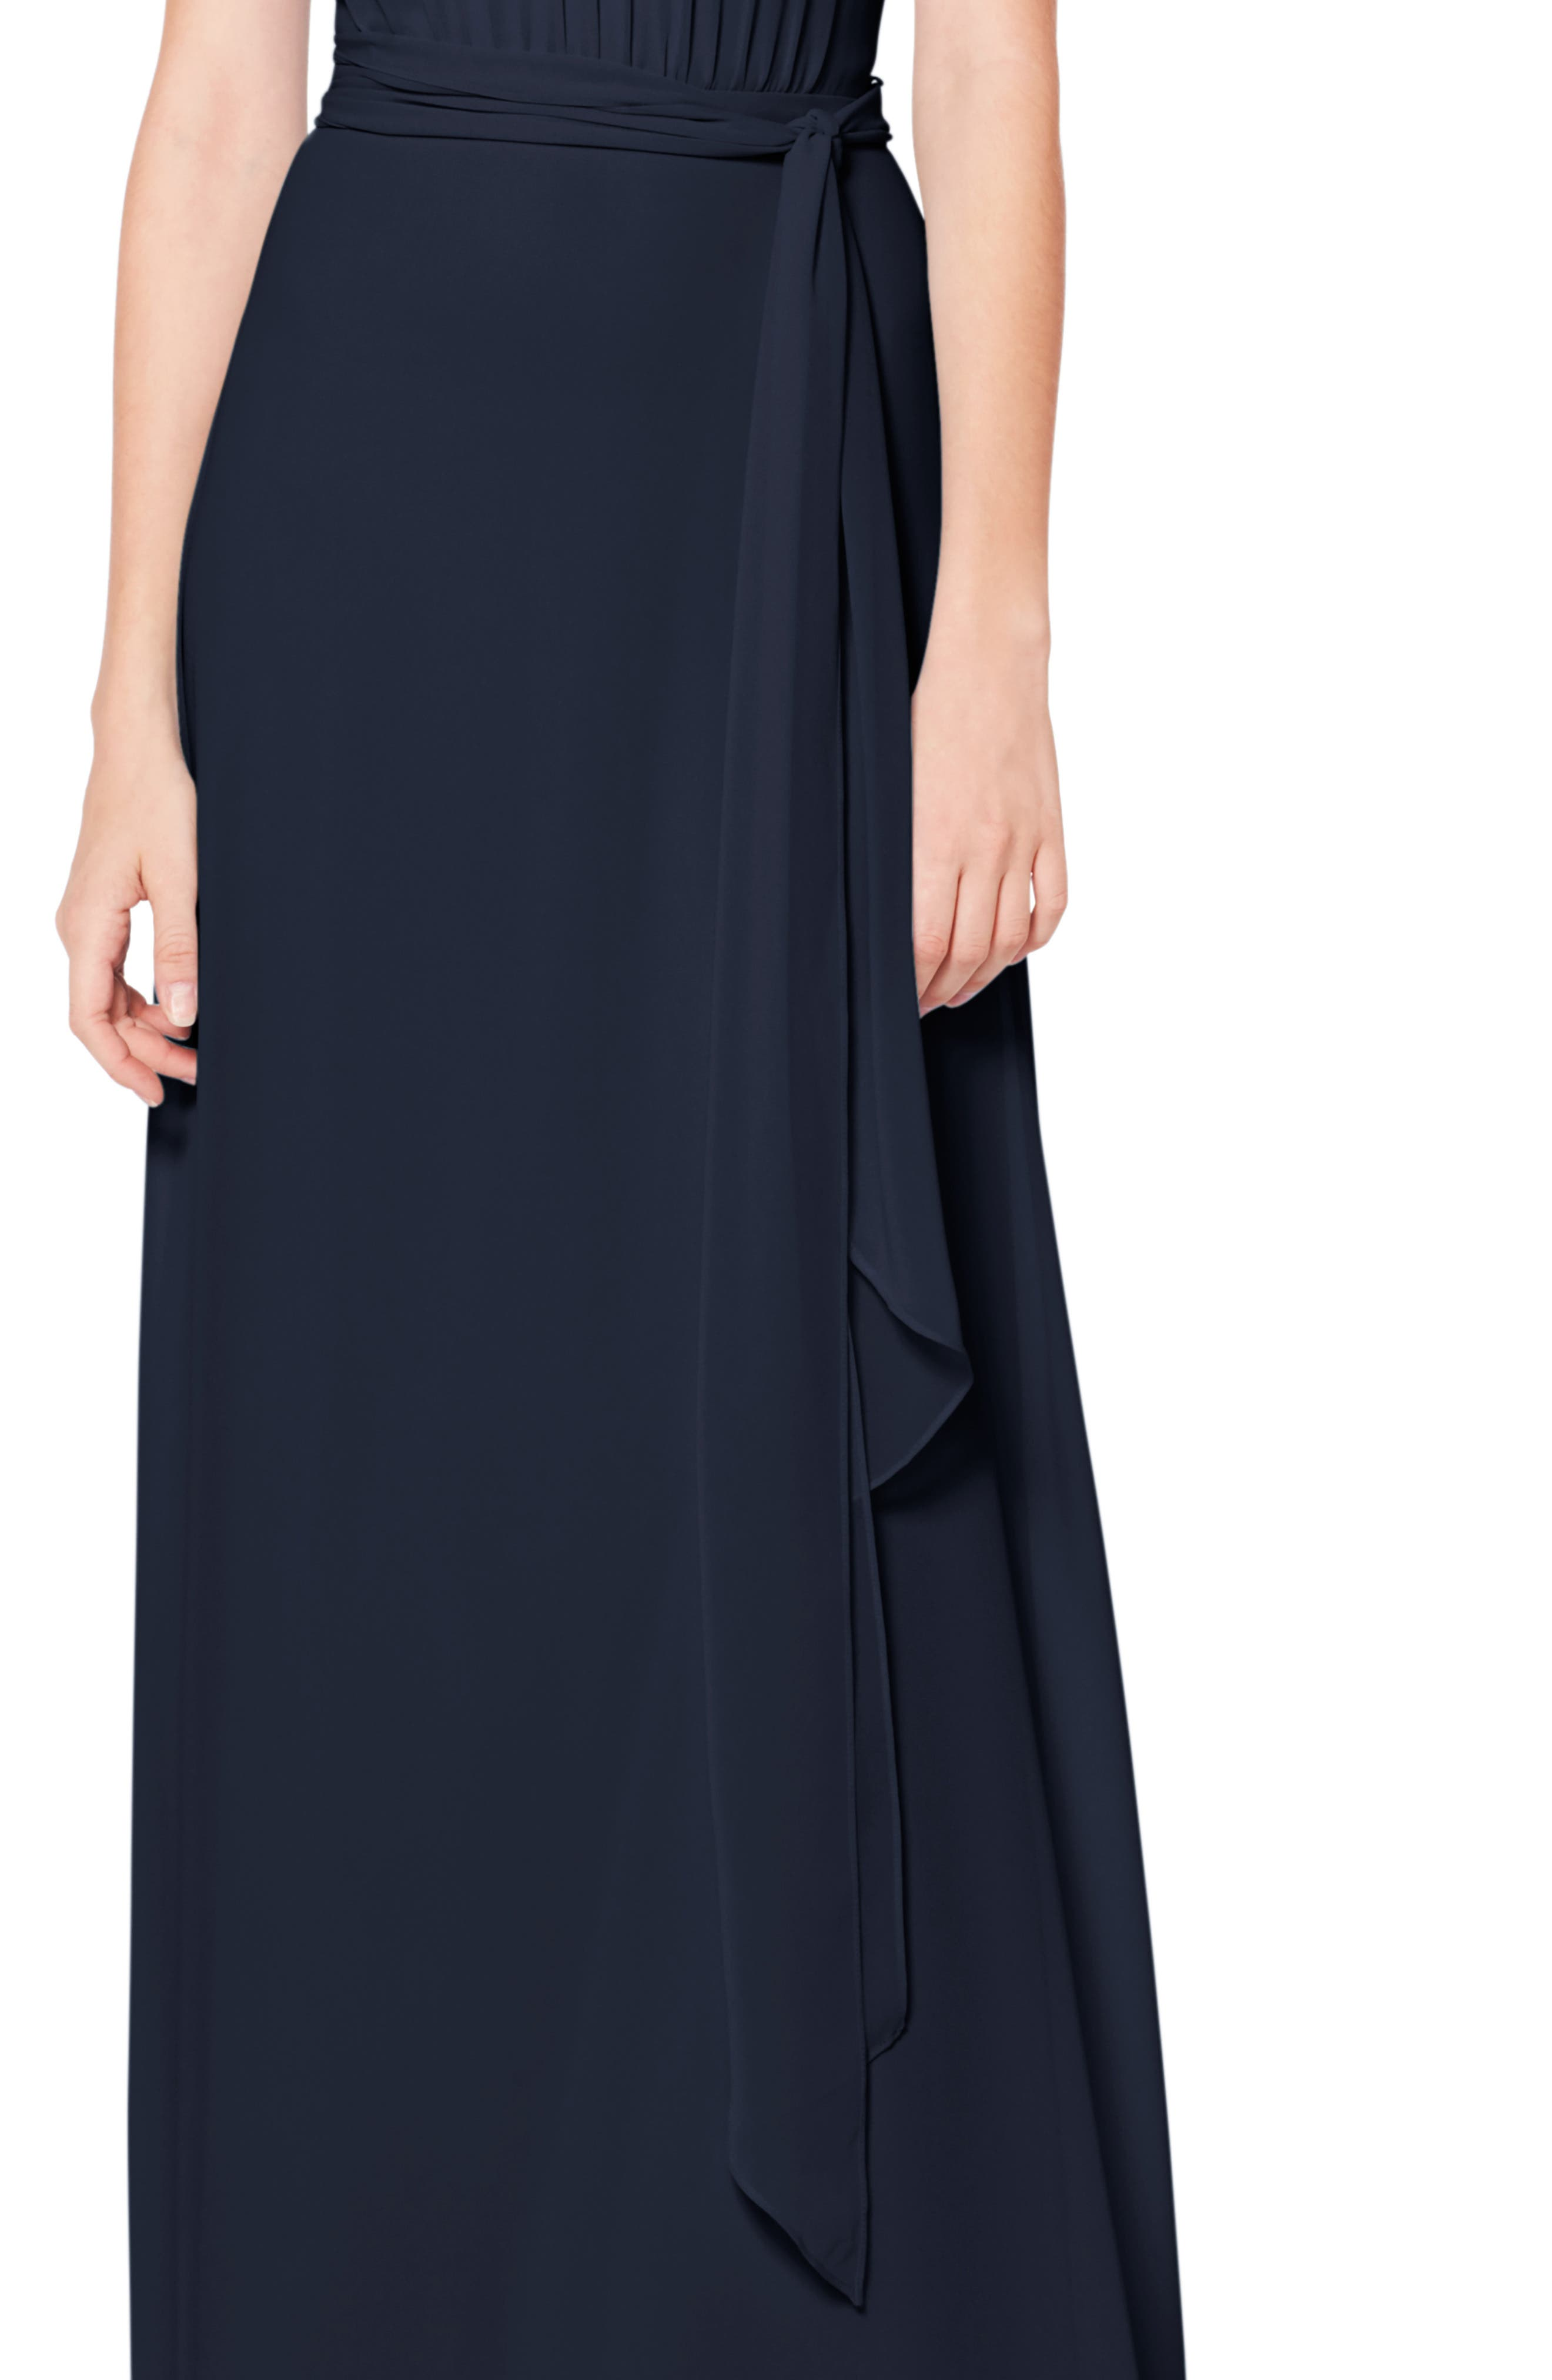 #LEVKOFF, Halter Neck Tie Detail Chiffon Gown, Alternate thumbnail 4, color, NAVY